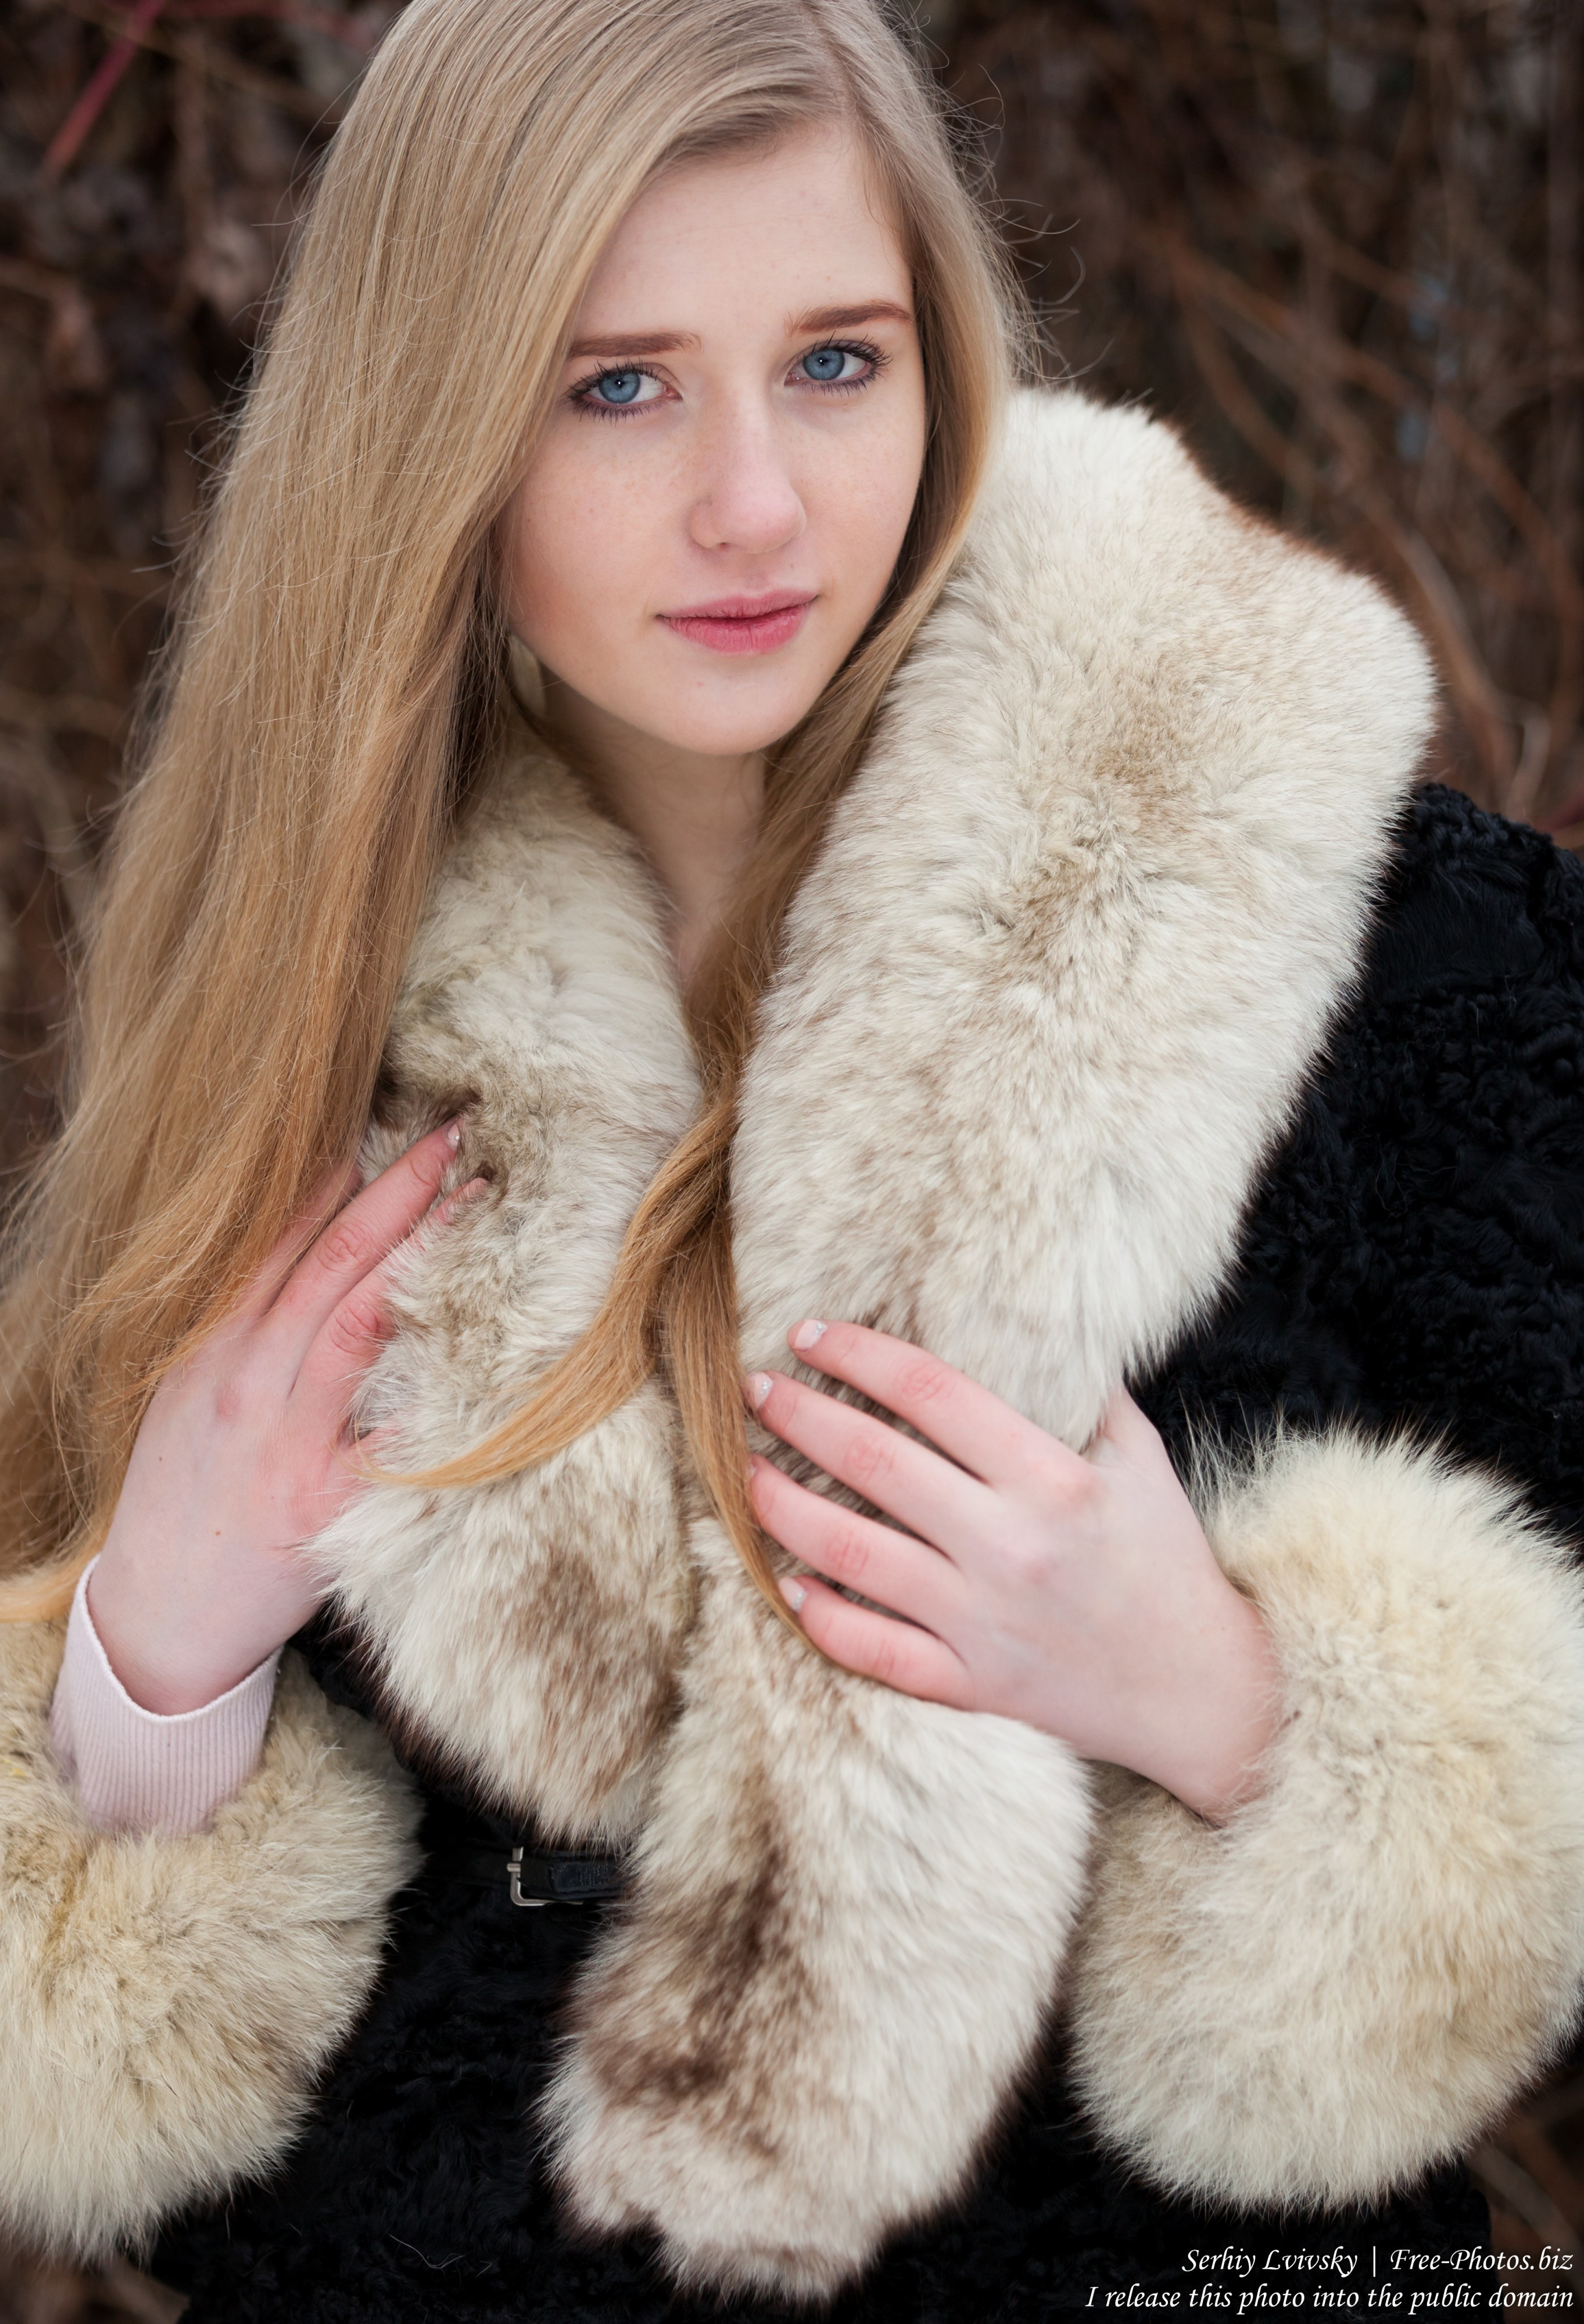 a natural blond 17-year-old girl photographed by Serhiy Lvivsky in January 2016, picture 14